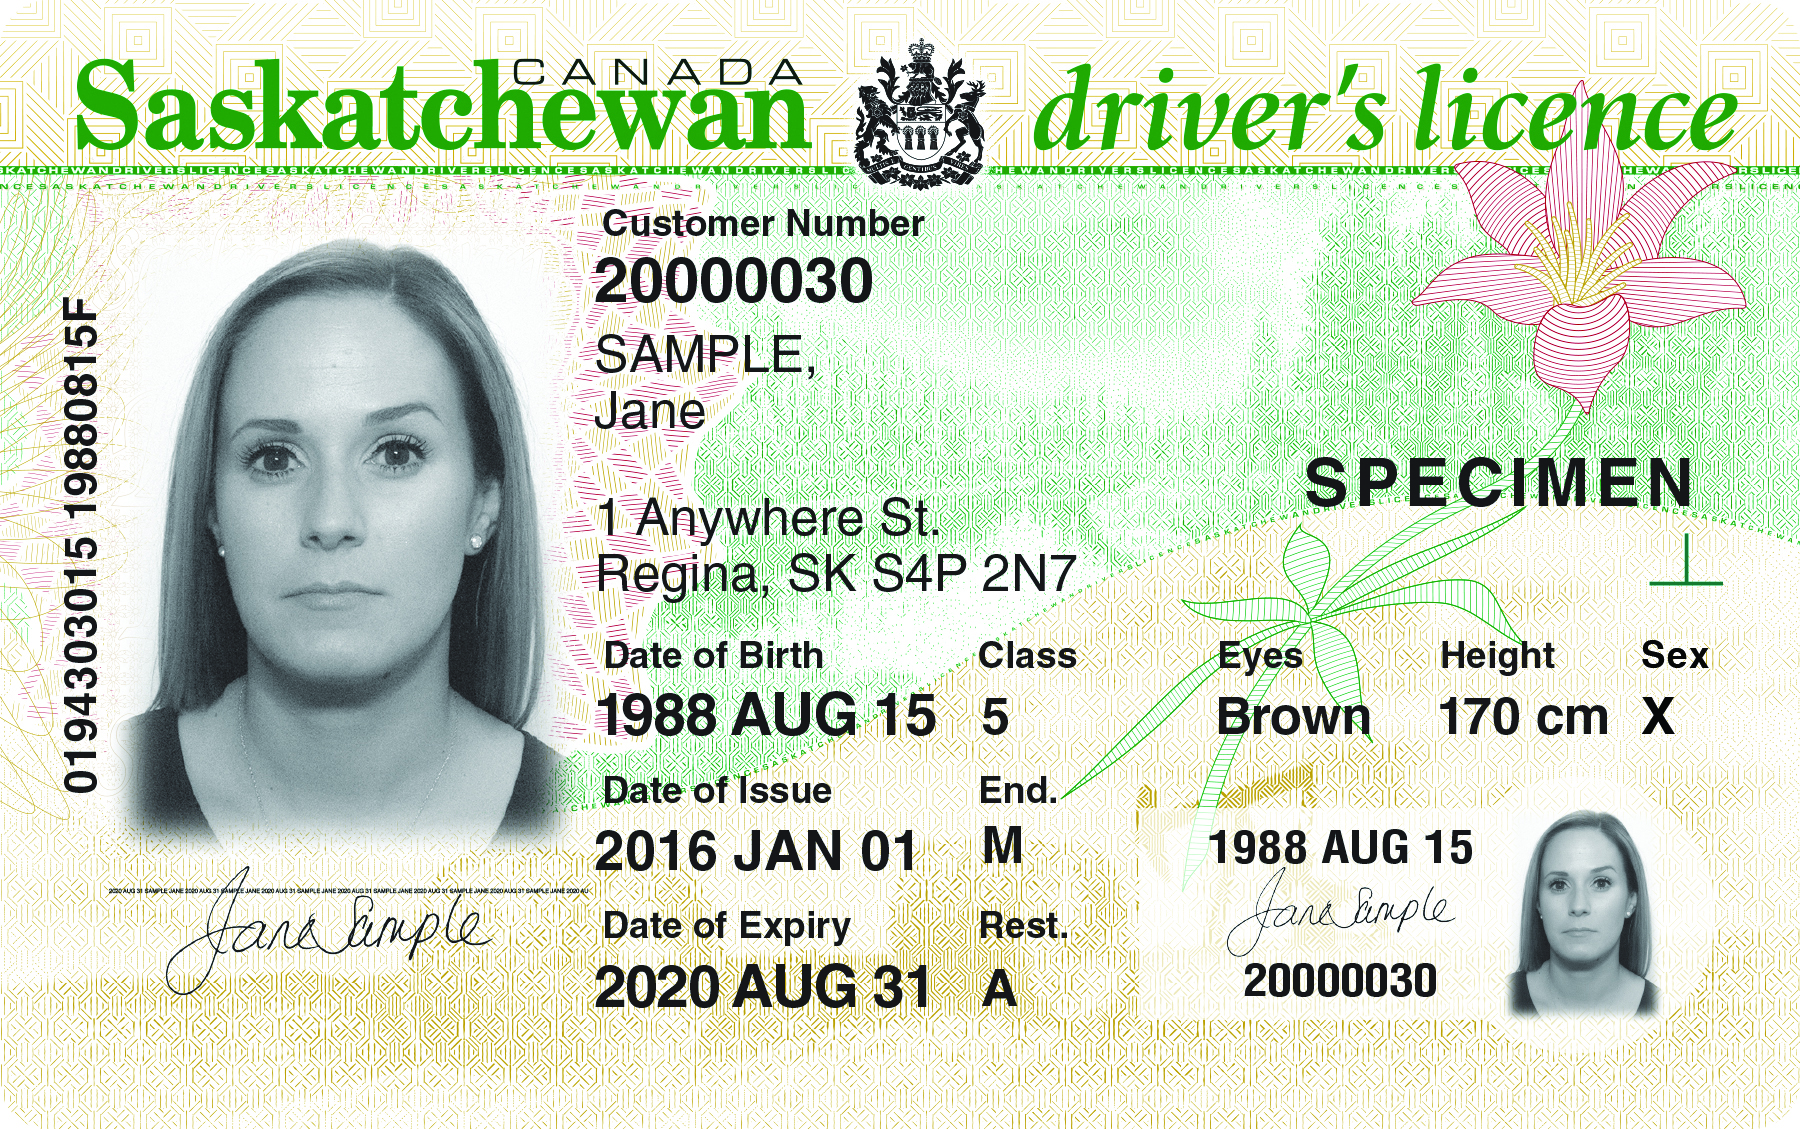 Example of the new SGI X designation on driver's licenses and photo ID